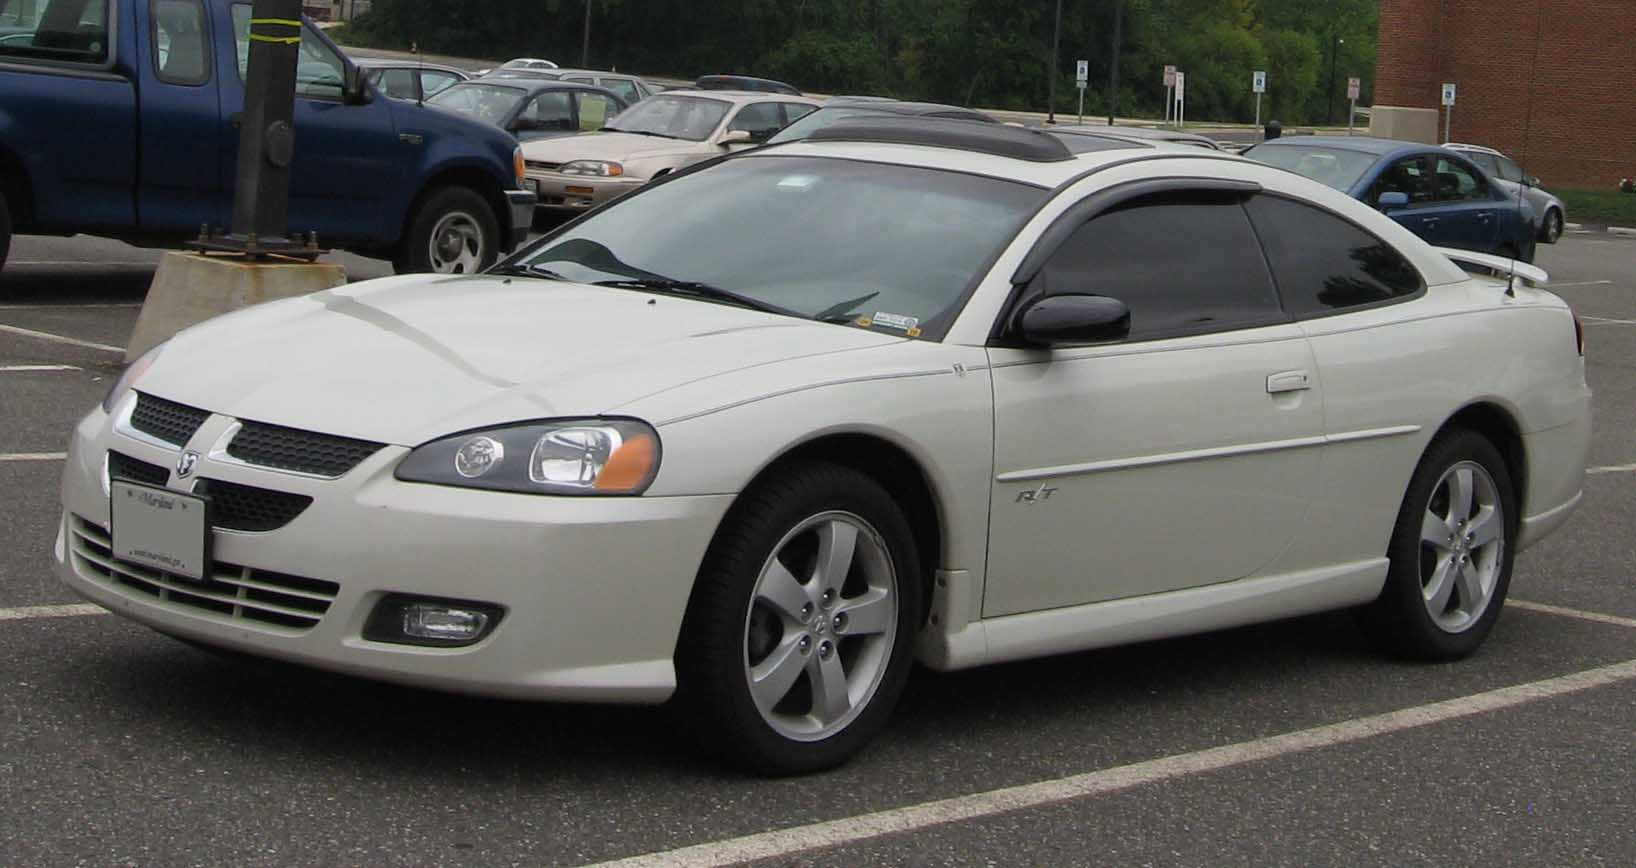 04 dodge stratus coupe: